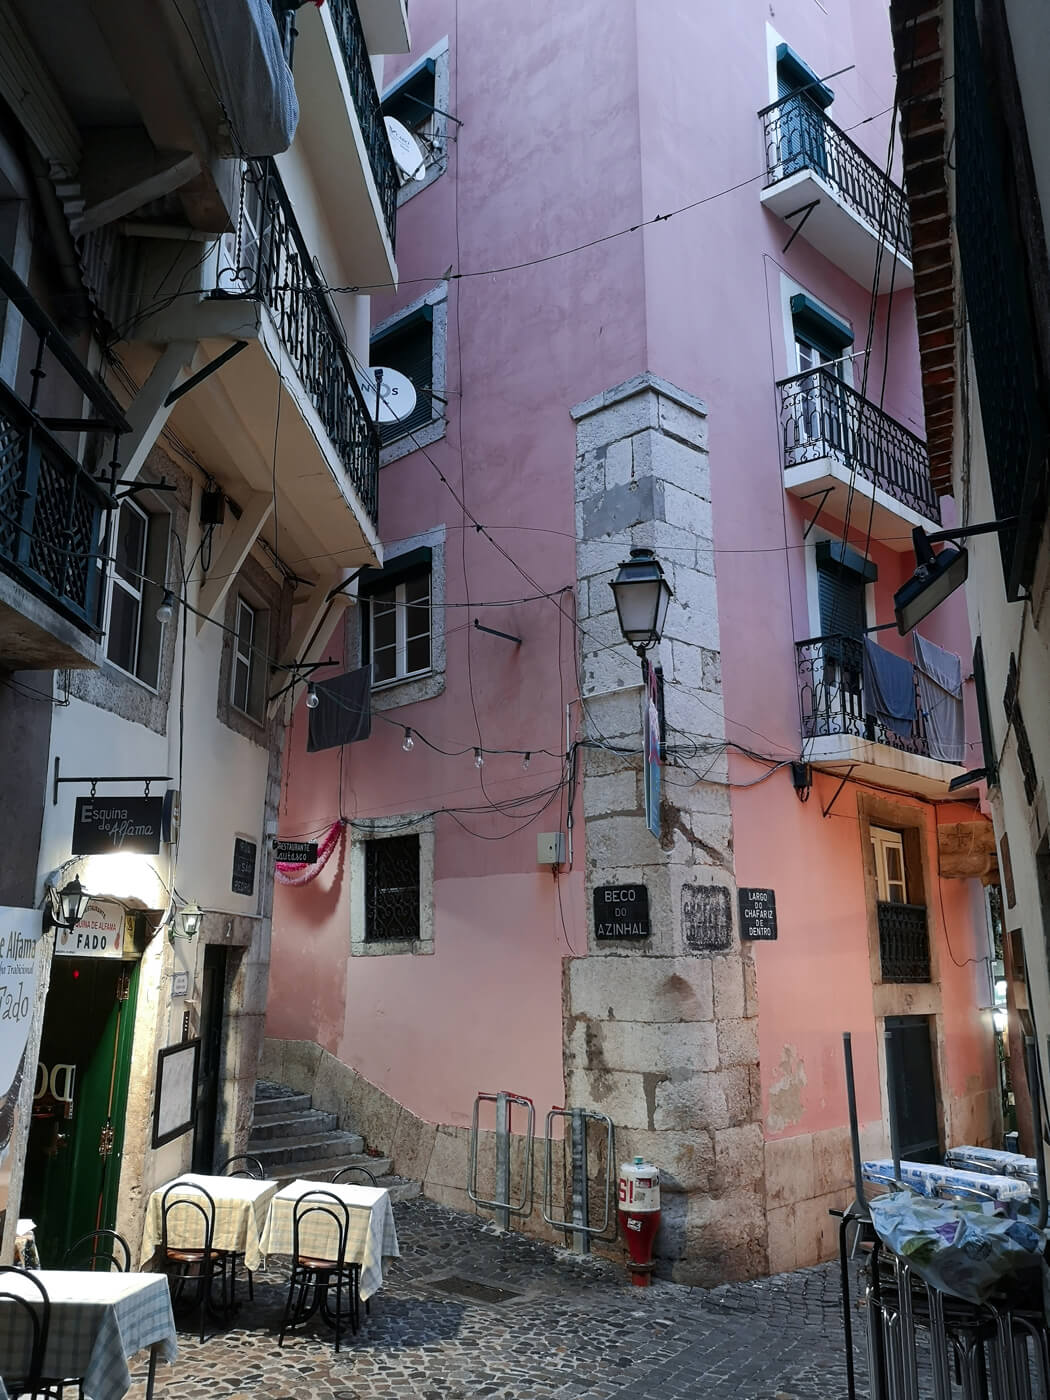 An old pink building in the old town Alfama district in Lisbon. There are tables and chairs set outside restaurants.